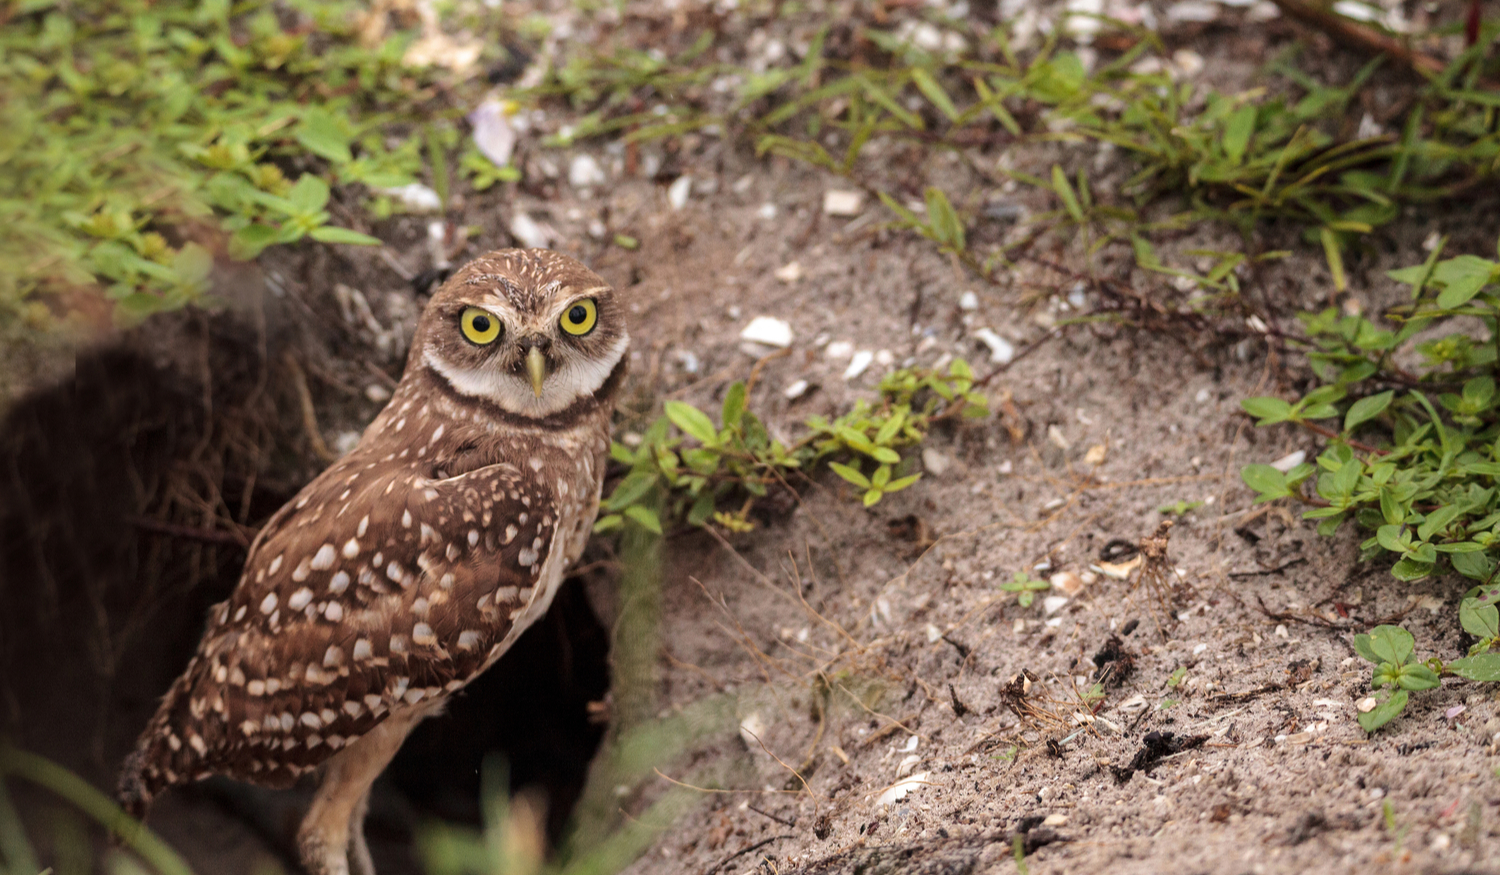 875-LAND JOURNAL-Blog-Awareness-How to Deal With Burrowing Owls on Your Property [VIDEO]-2019